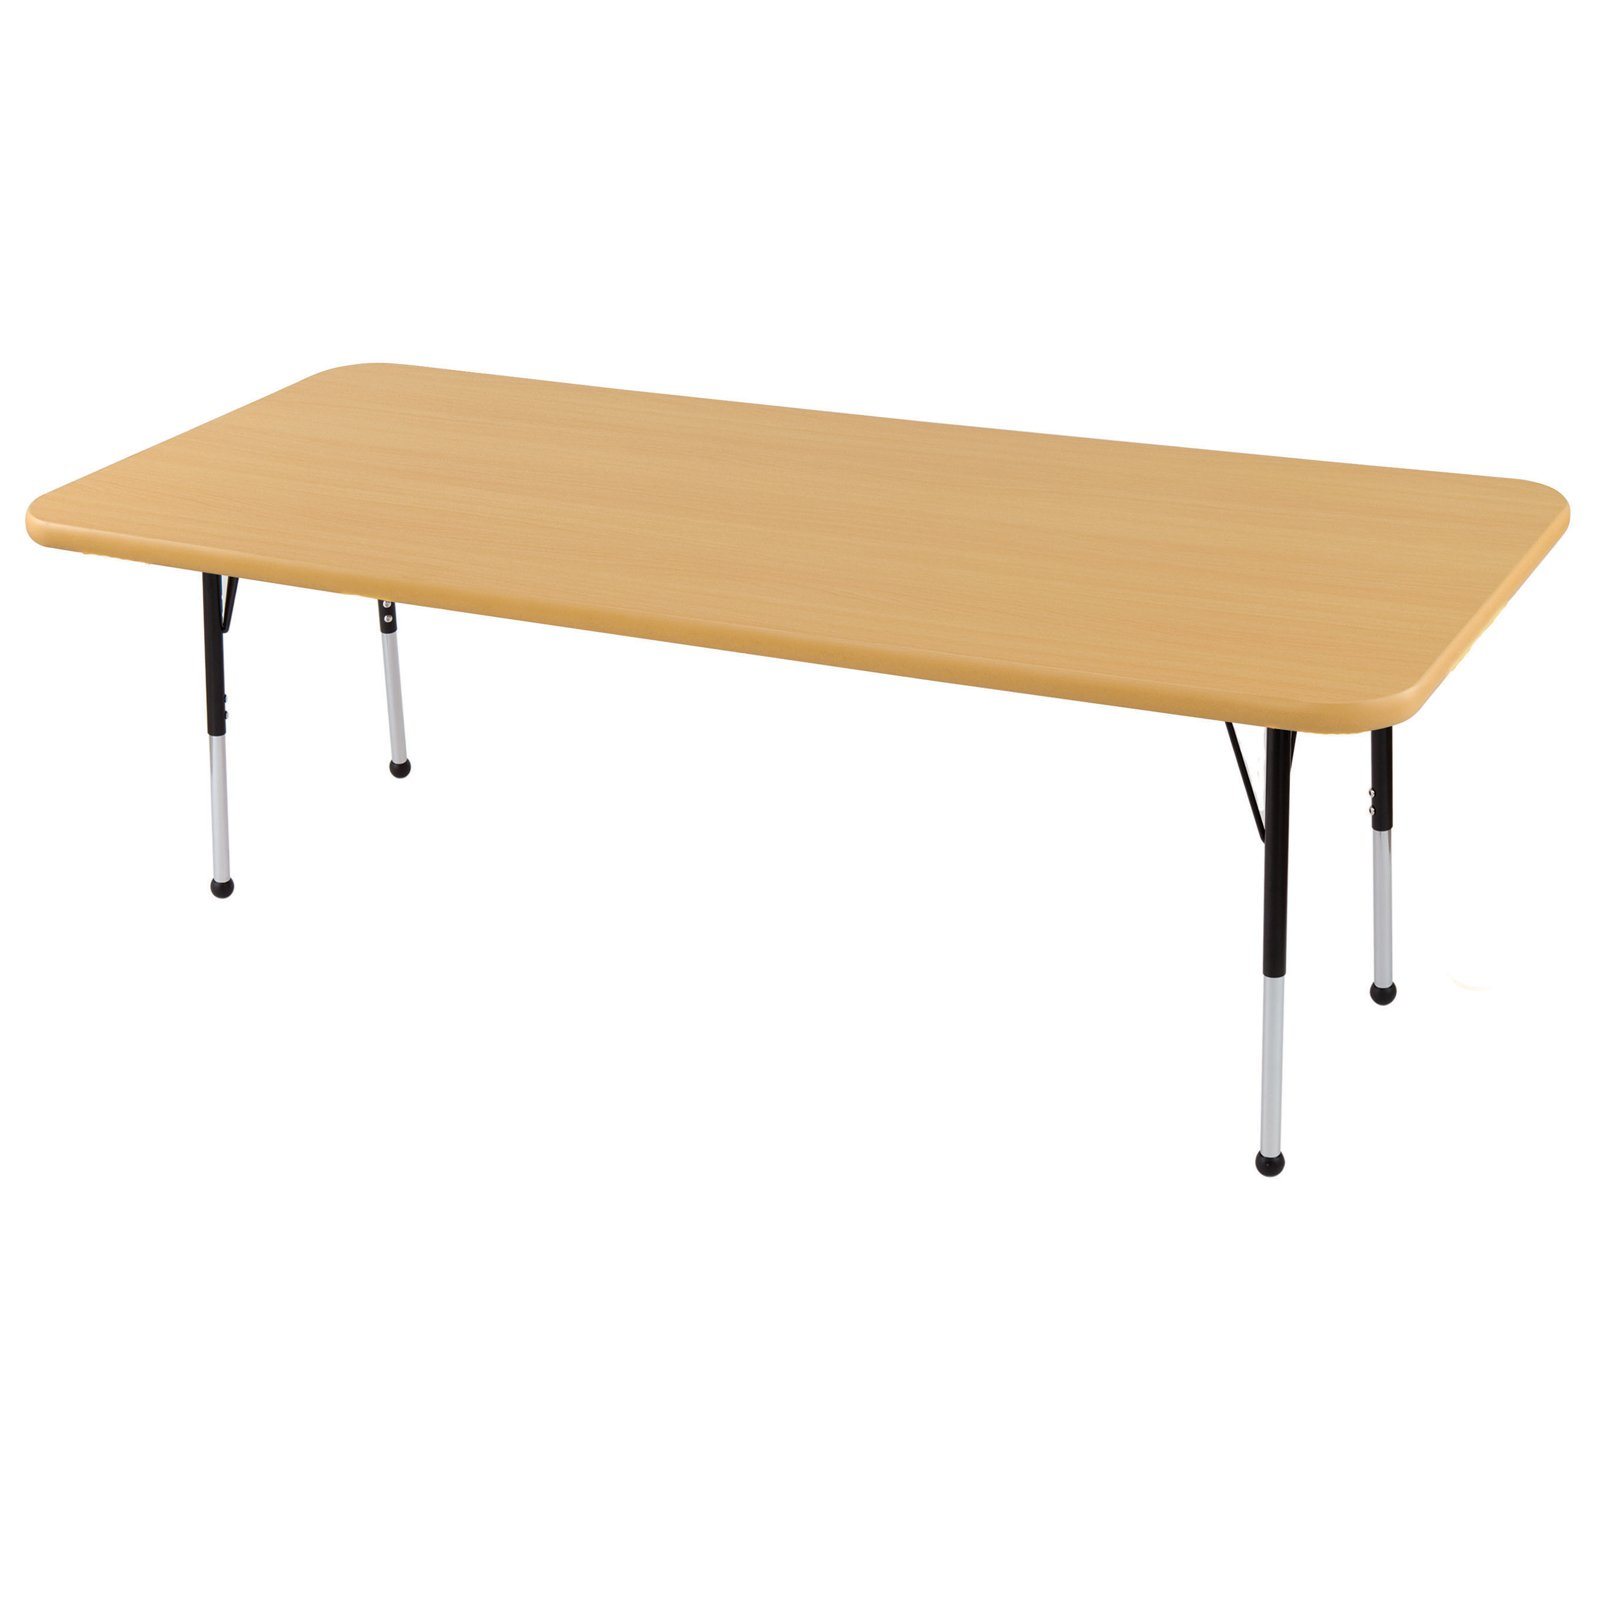 Rectangular Activity Table in Maple and Red (Toddler: 72 in. W x 24 in. D x 15 in. - 23 in. H)